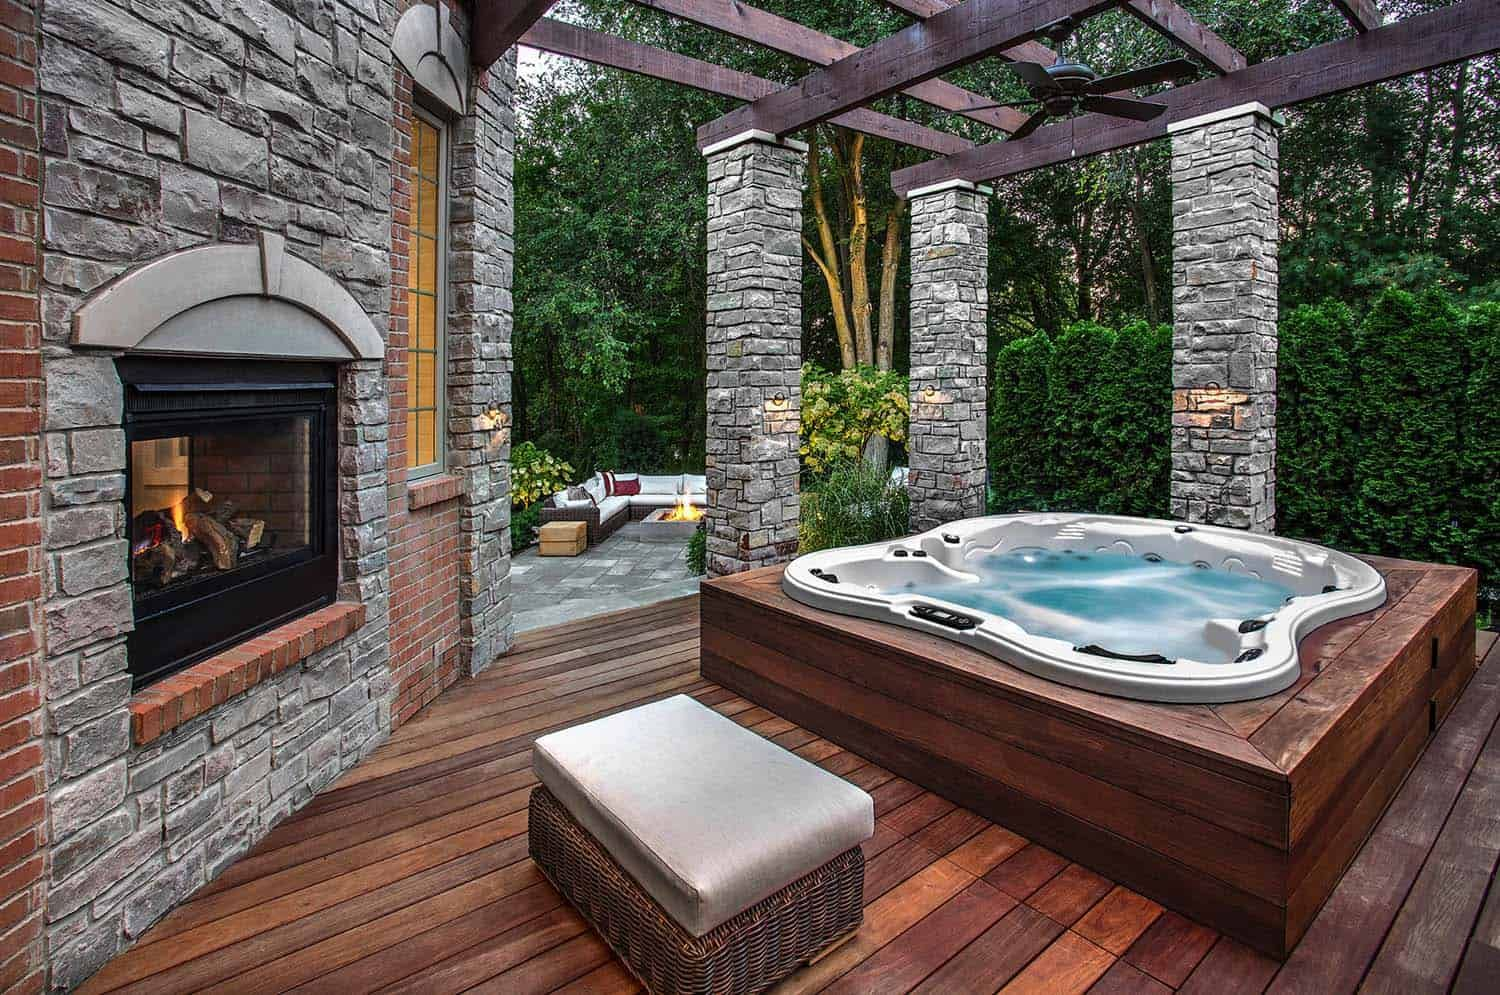 40 Outstanding Hot Tub Ideas To Create A Backyard Oasis Hot Tub Backyard Hot Tub Deck Hot Tub Garden